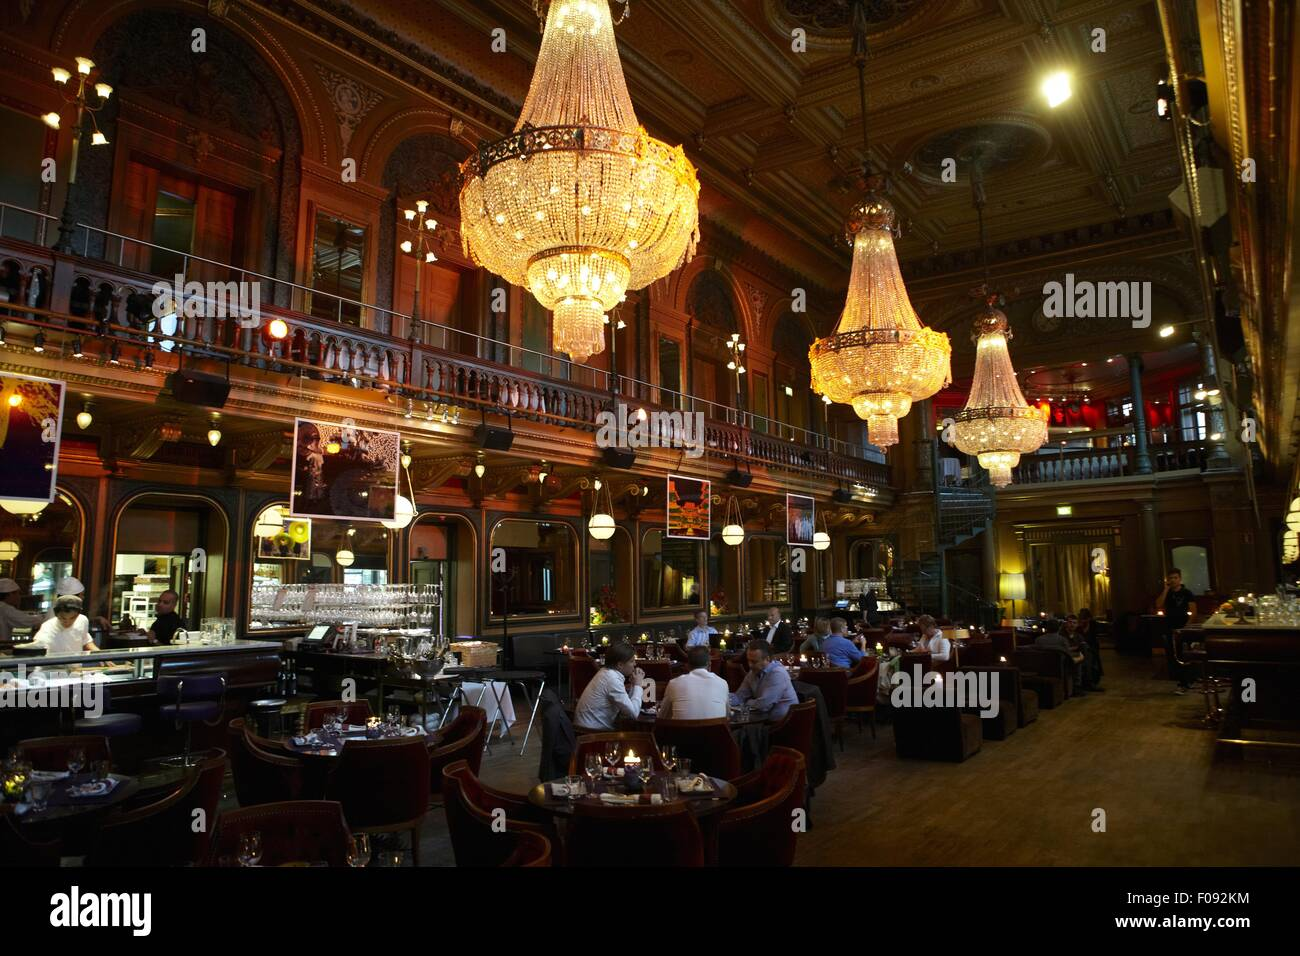 Bar In Stockholm Stock Photos & Bar In Stockholm Stock Images - Alamy